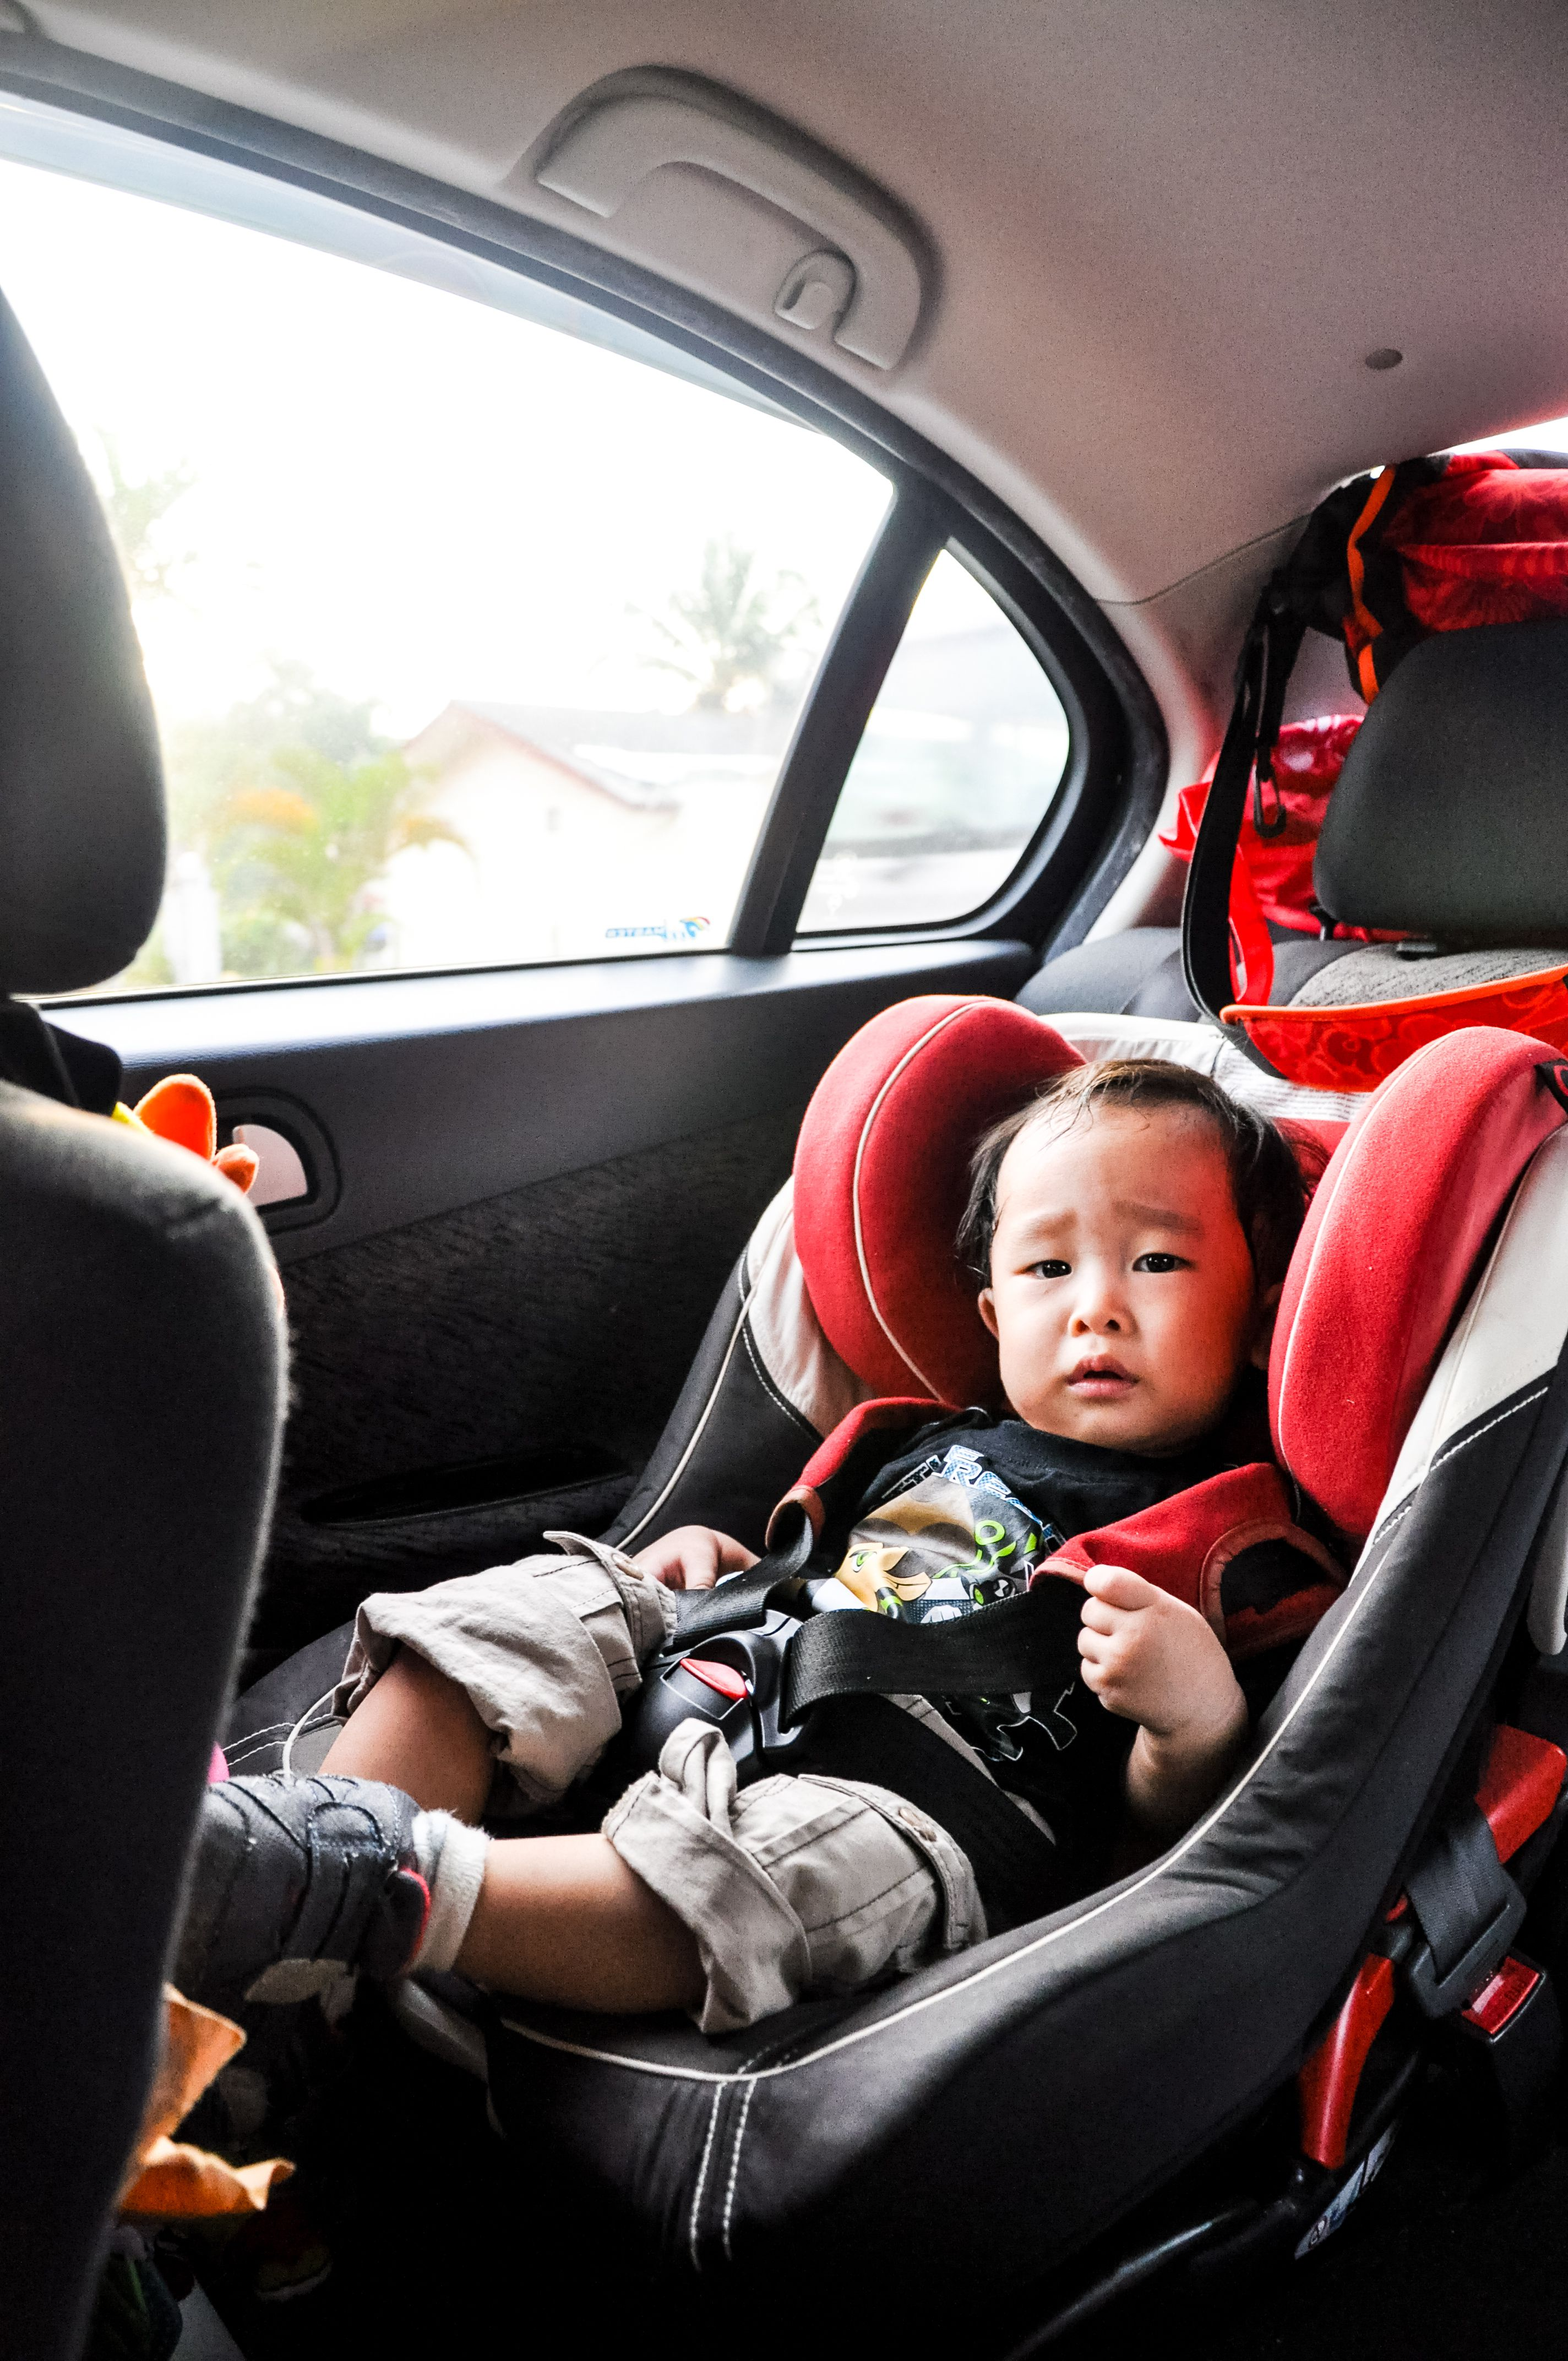 The AAP said all infants and toddlers should ride in rear-facing car seats for